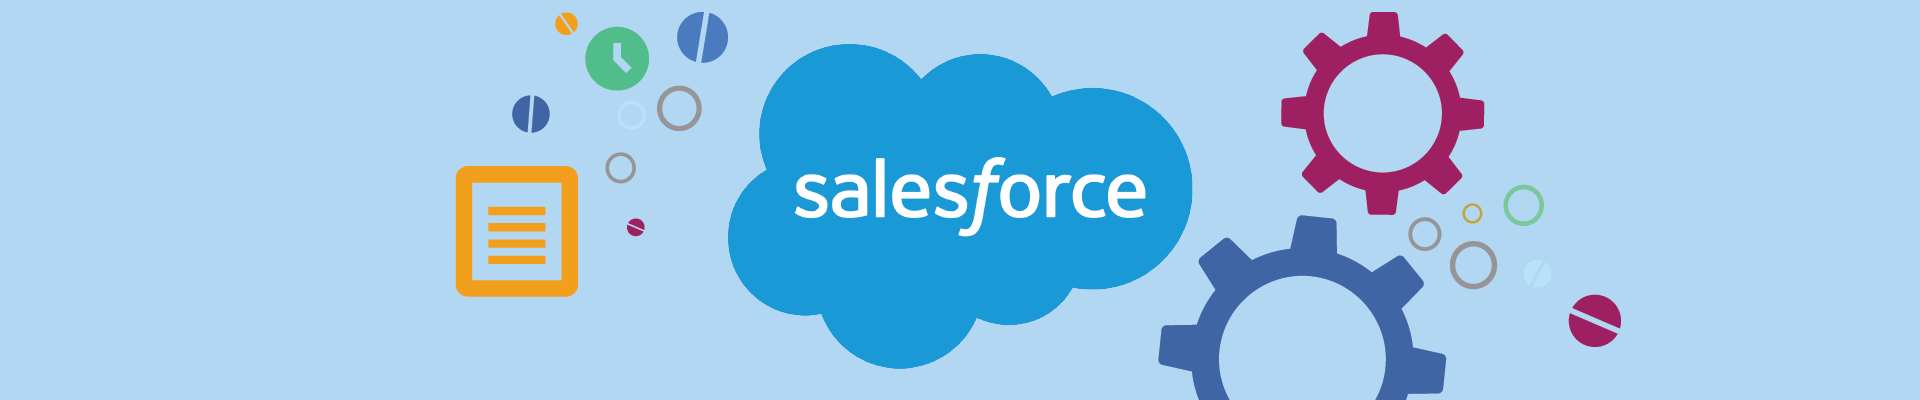 Salesforce_developer_banner-01.png